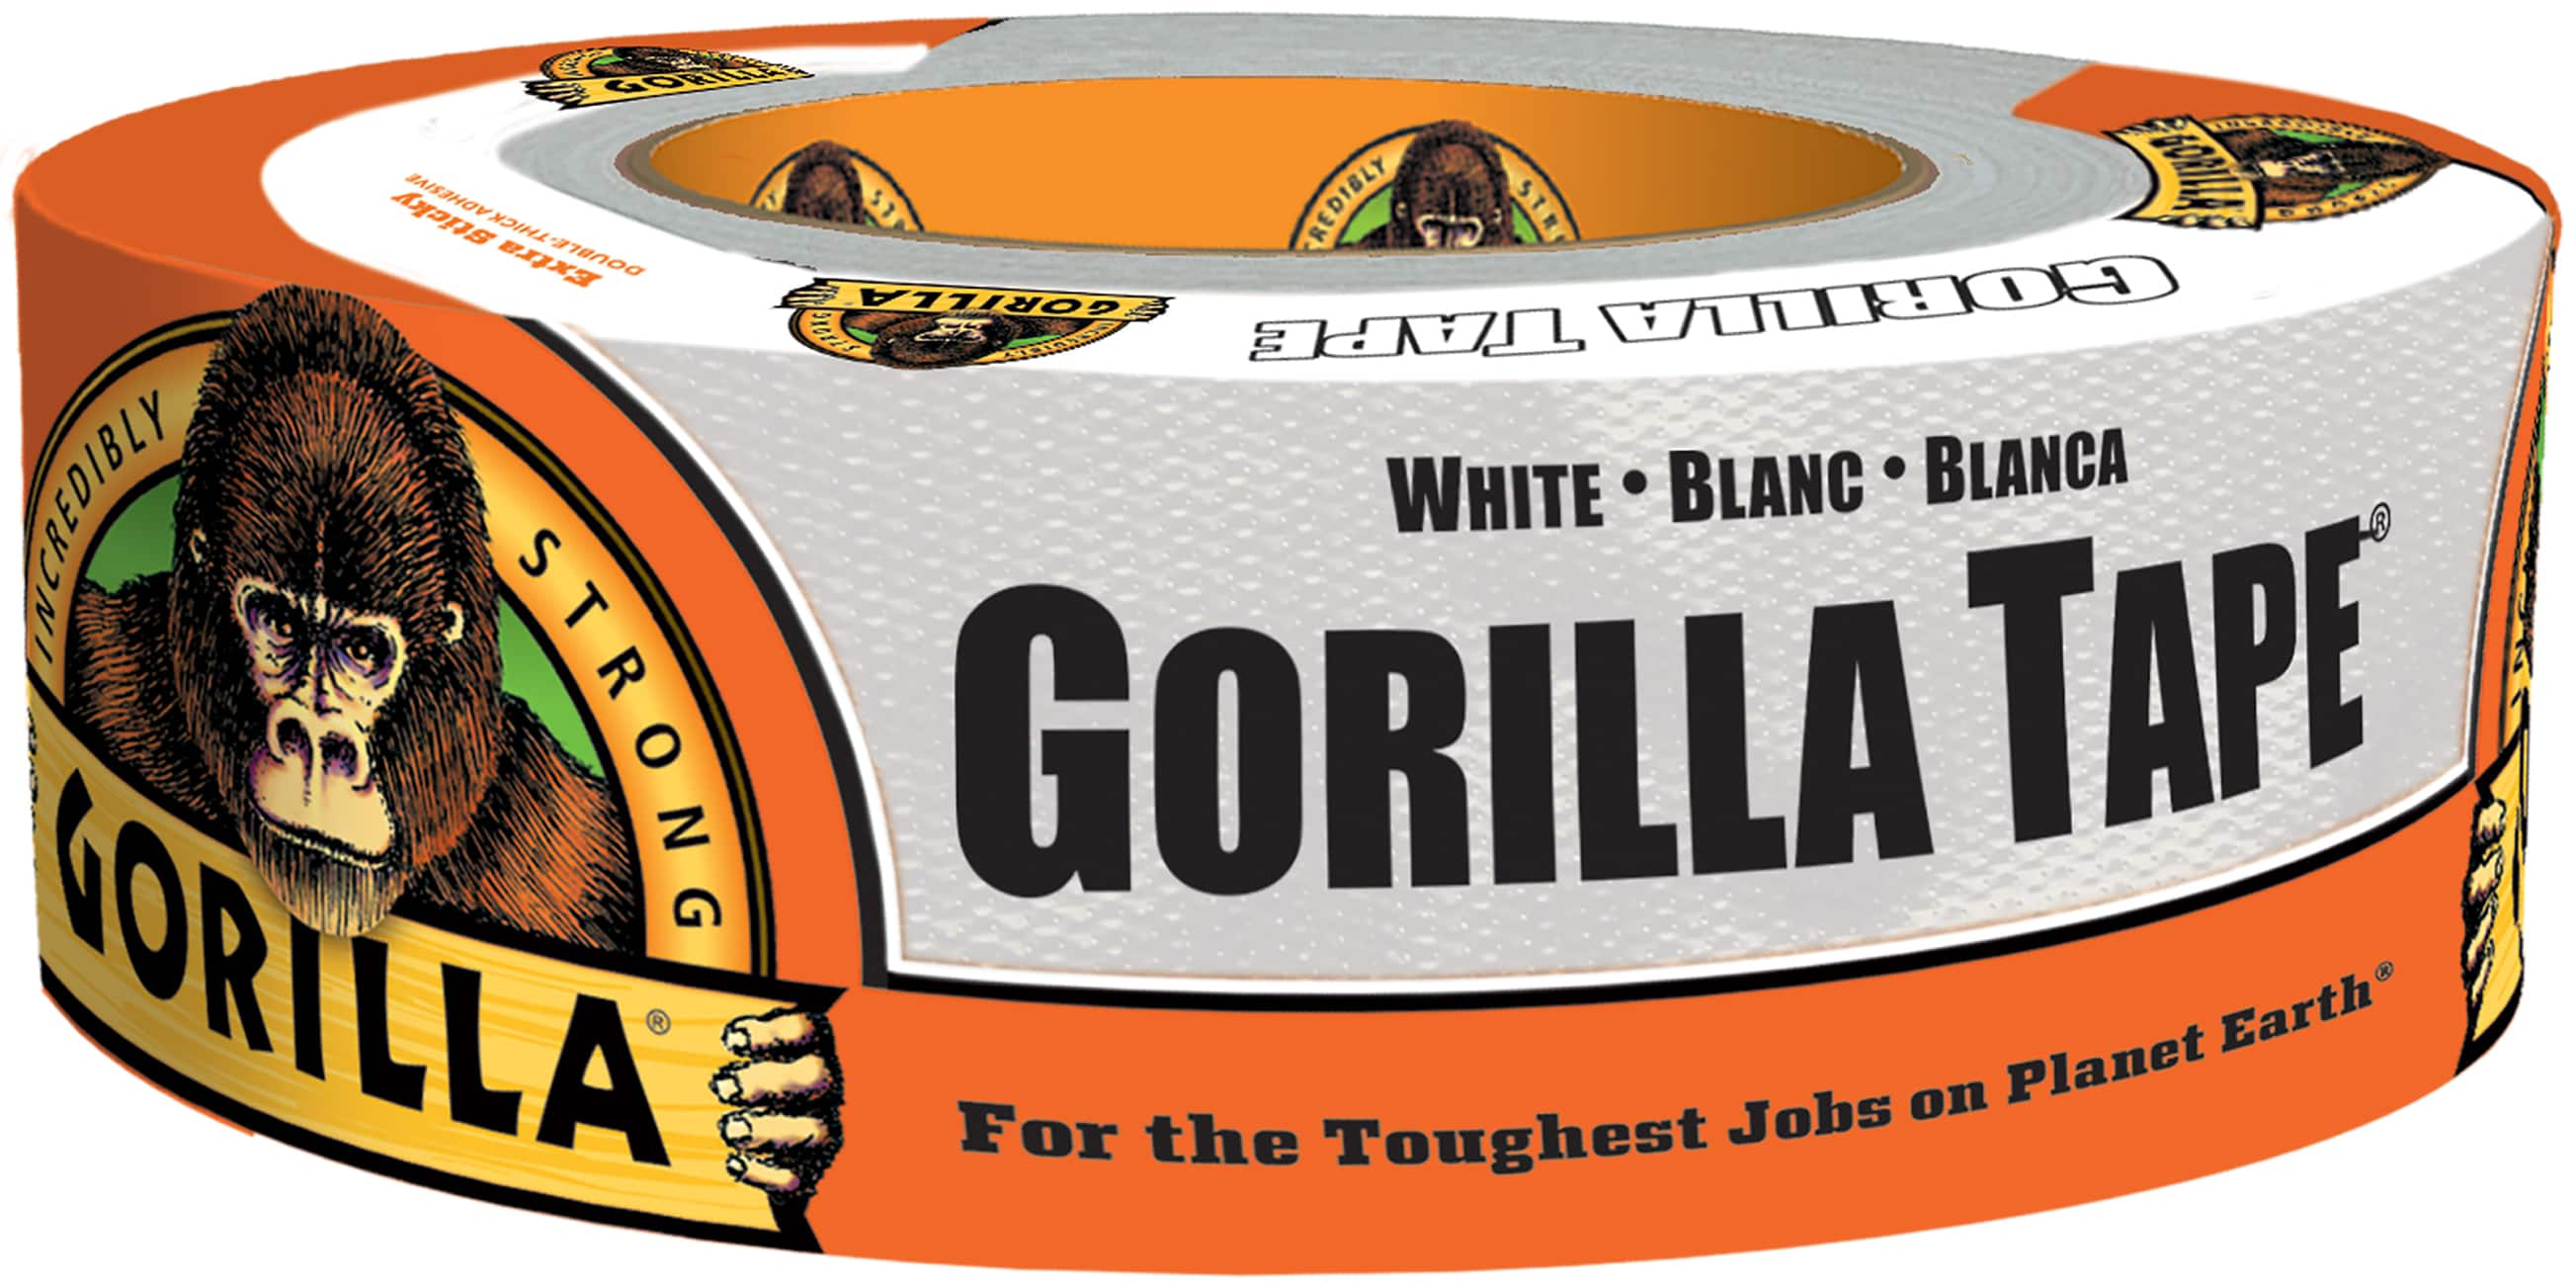 """Gorilla Tape, White Duct Tape, 1.88"""" x 30 yd $4.23 at Amazon free shipping w/prime limit 1"""